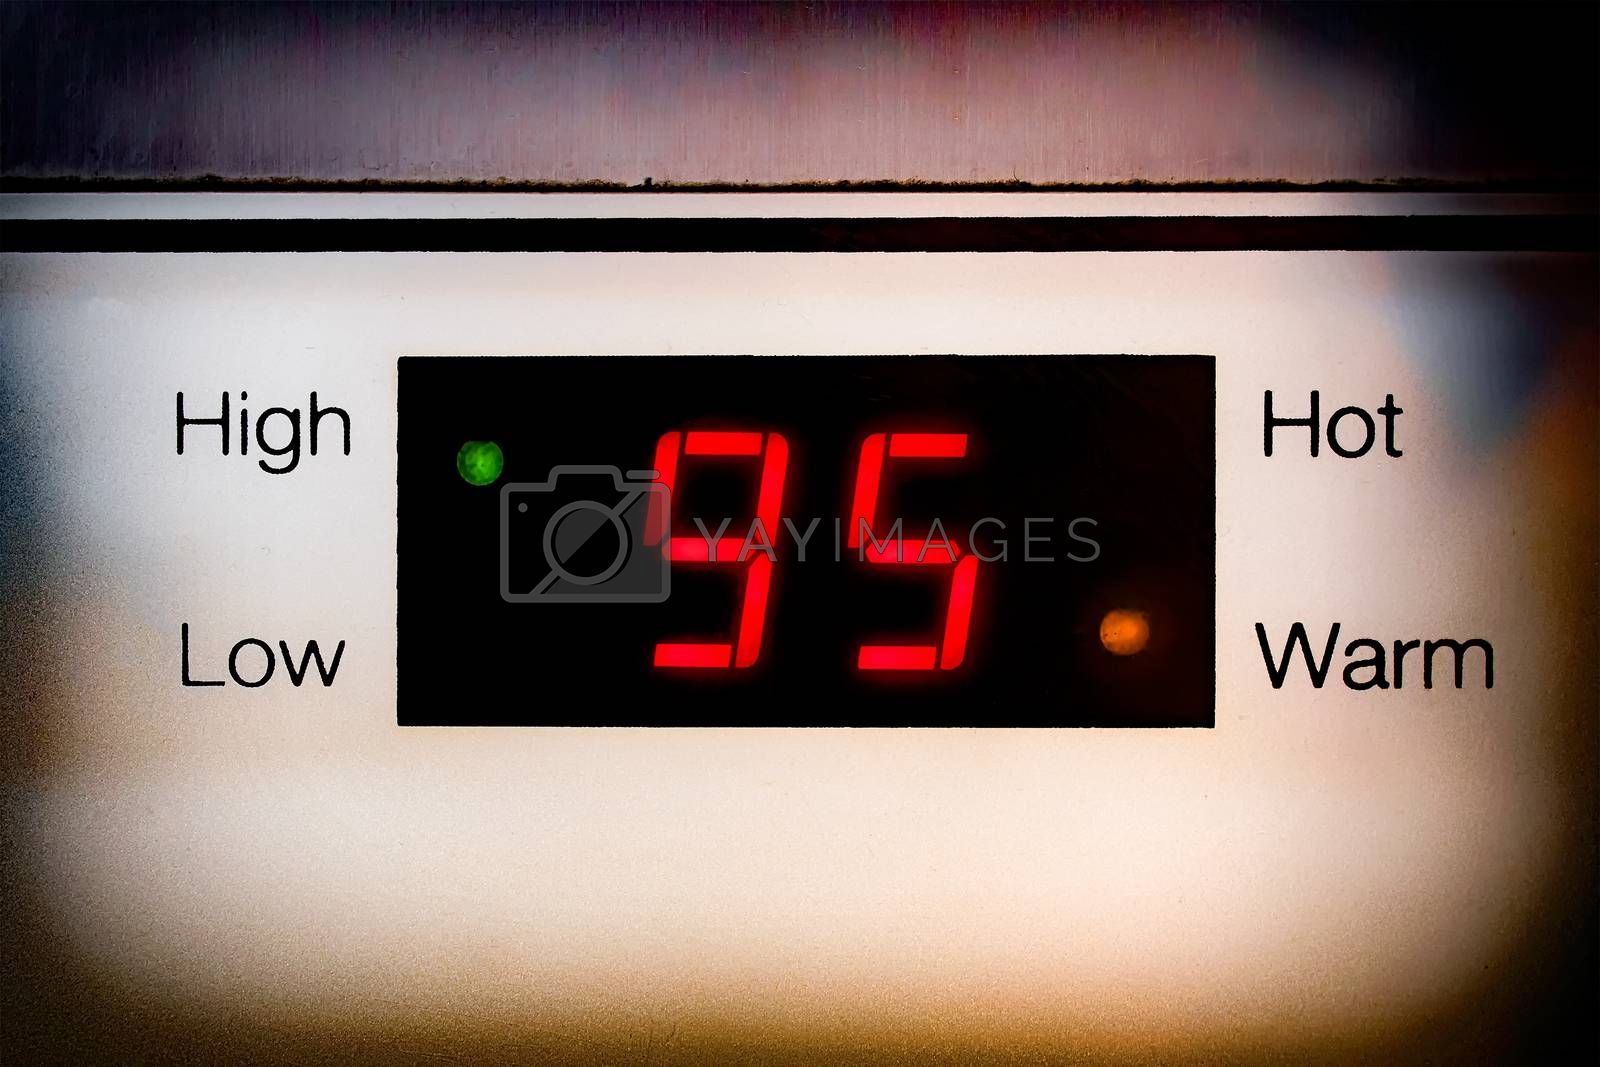 LED Temperature Display Shows 95 Degrees Celsius on a Water Boiler